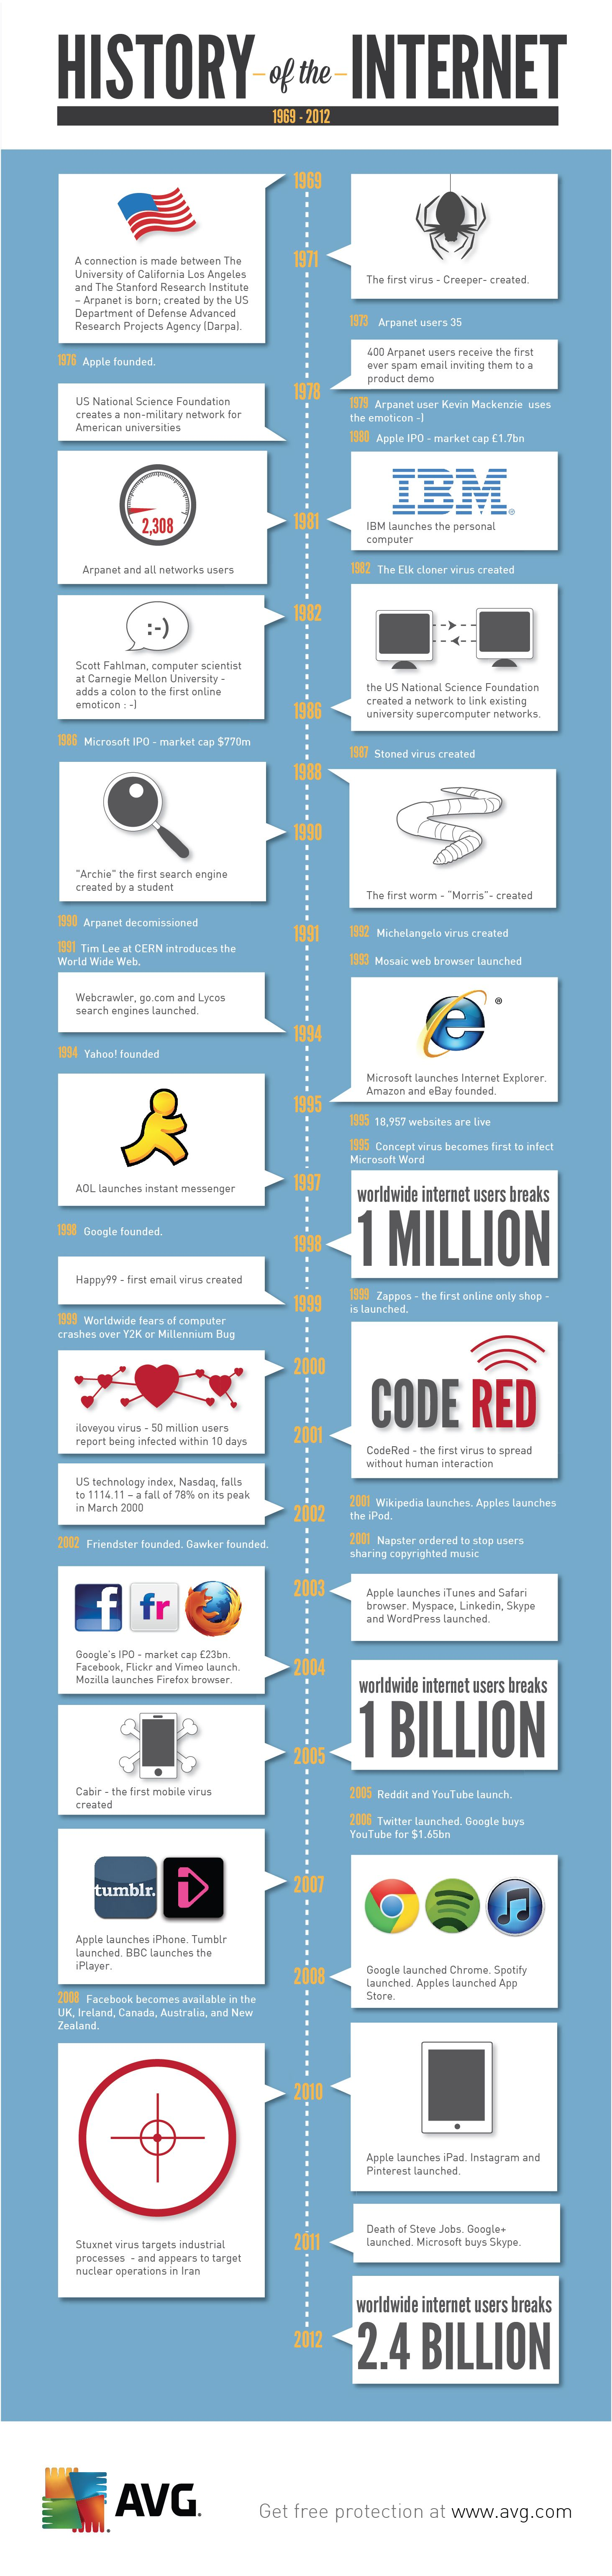 The History of the Internet - from 1969 - 2012 - from the very first virus to the birth of Google and beyond!